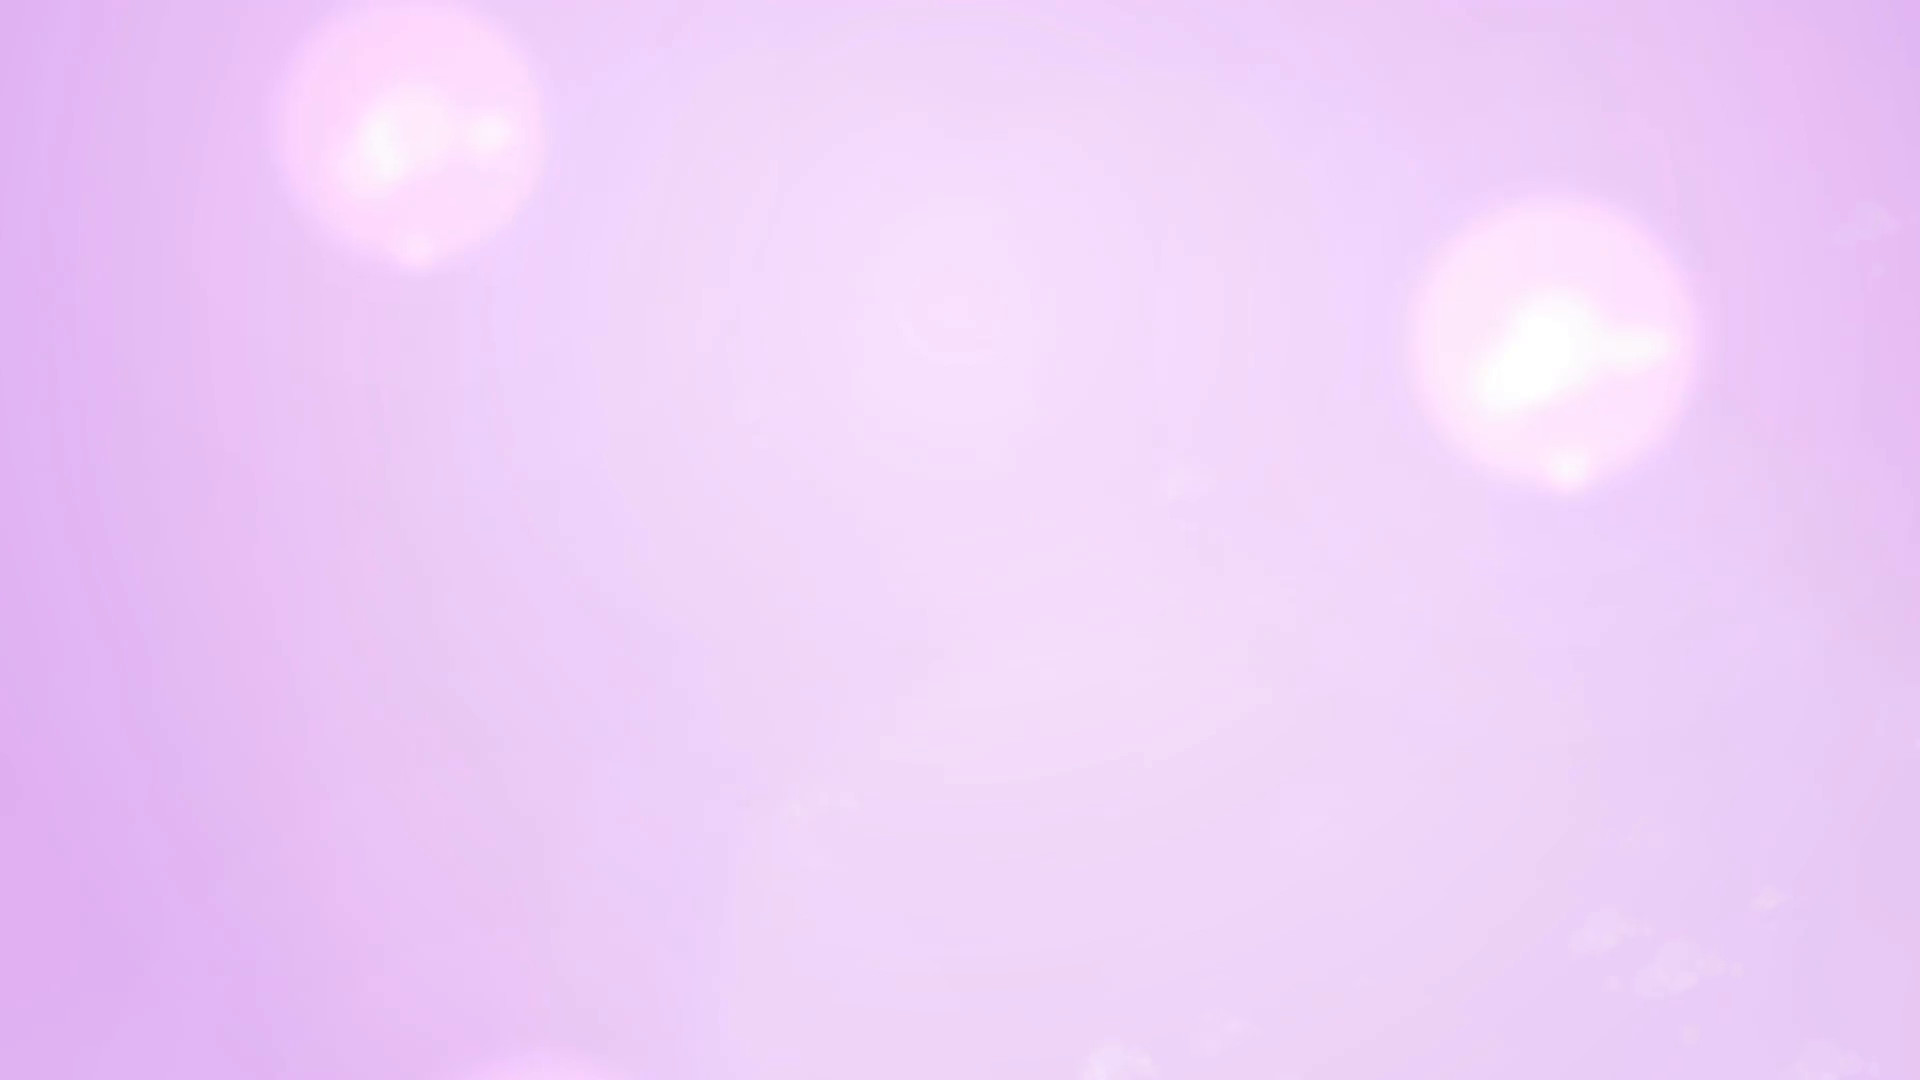 Subscription Library Bokeh Light Particles on Soft Pink Background as  Backdrop Motion Layer for Animation, full